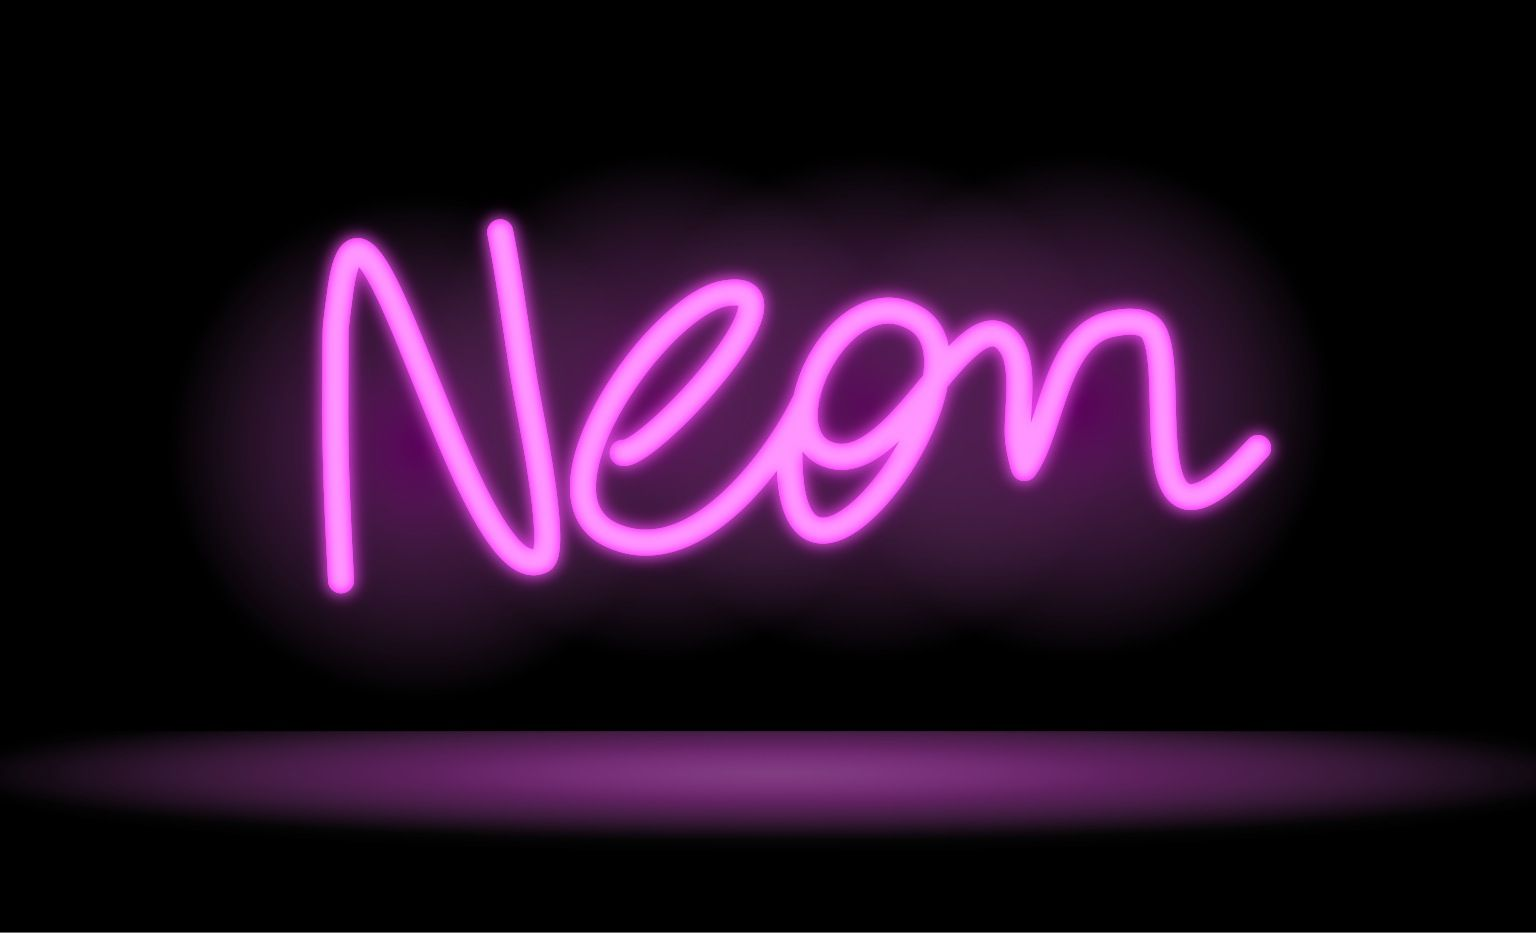 Drawing A Neon Sign In Inkpad Neon Signs Neon Neon Design